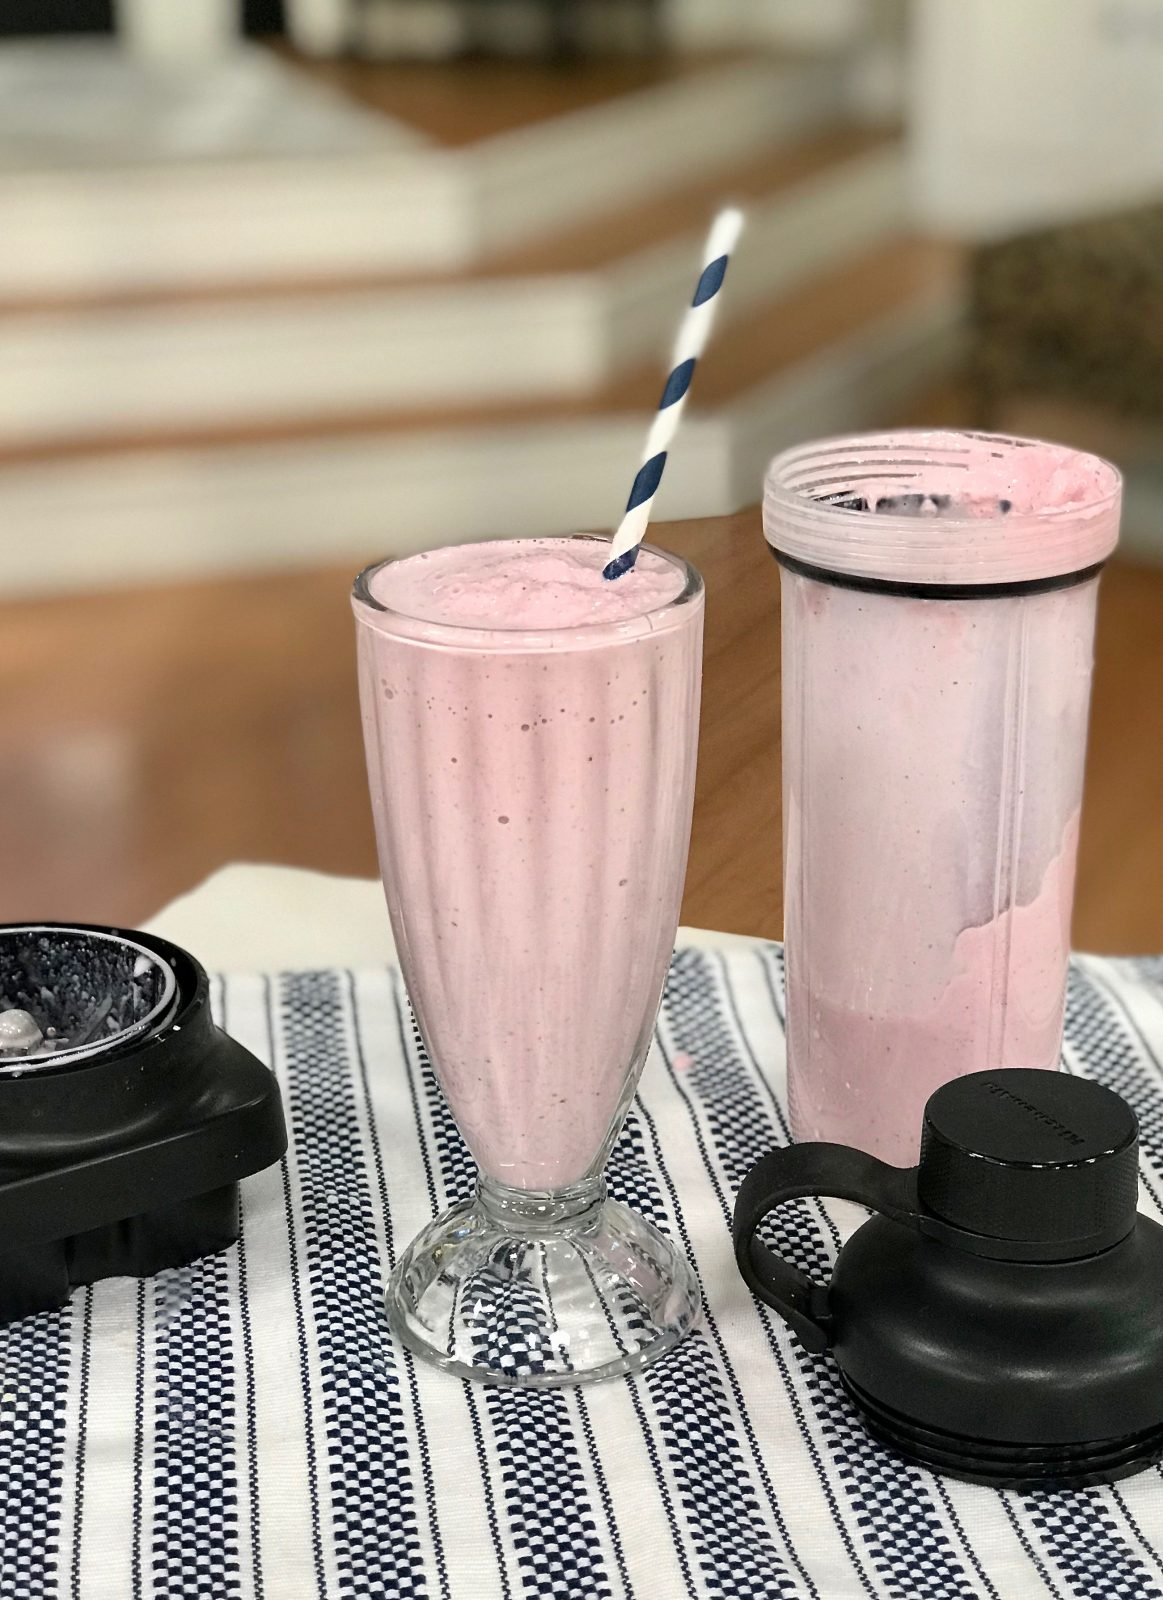 strawberry milkshake in glass with straw, KitchenAid personal blending jar off to the side